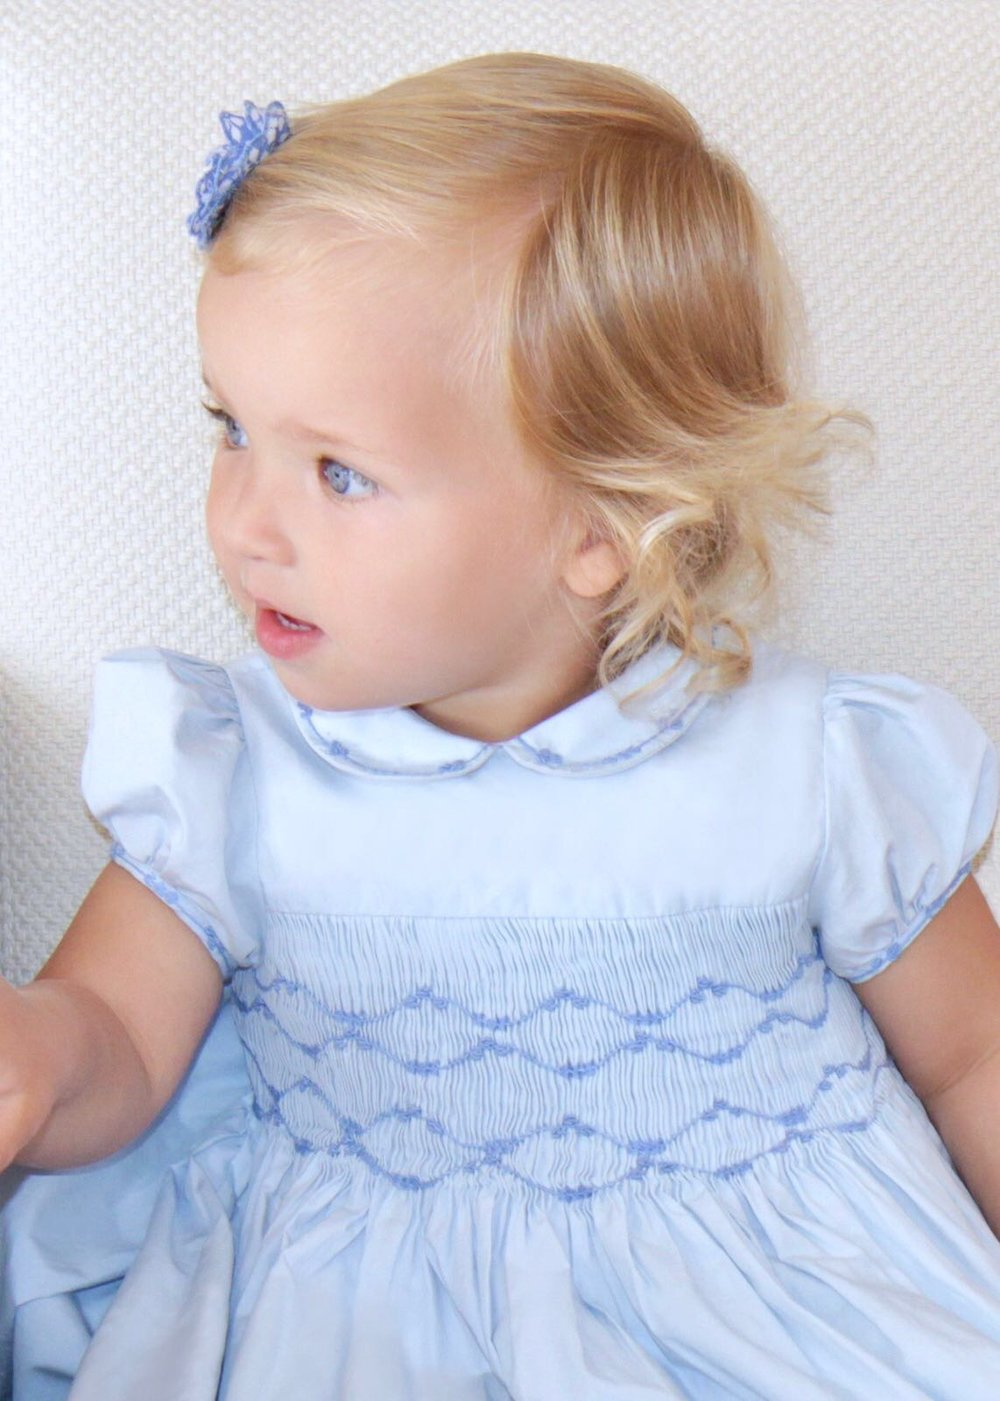 Handmade sky blue Cerise smocked dress